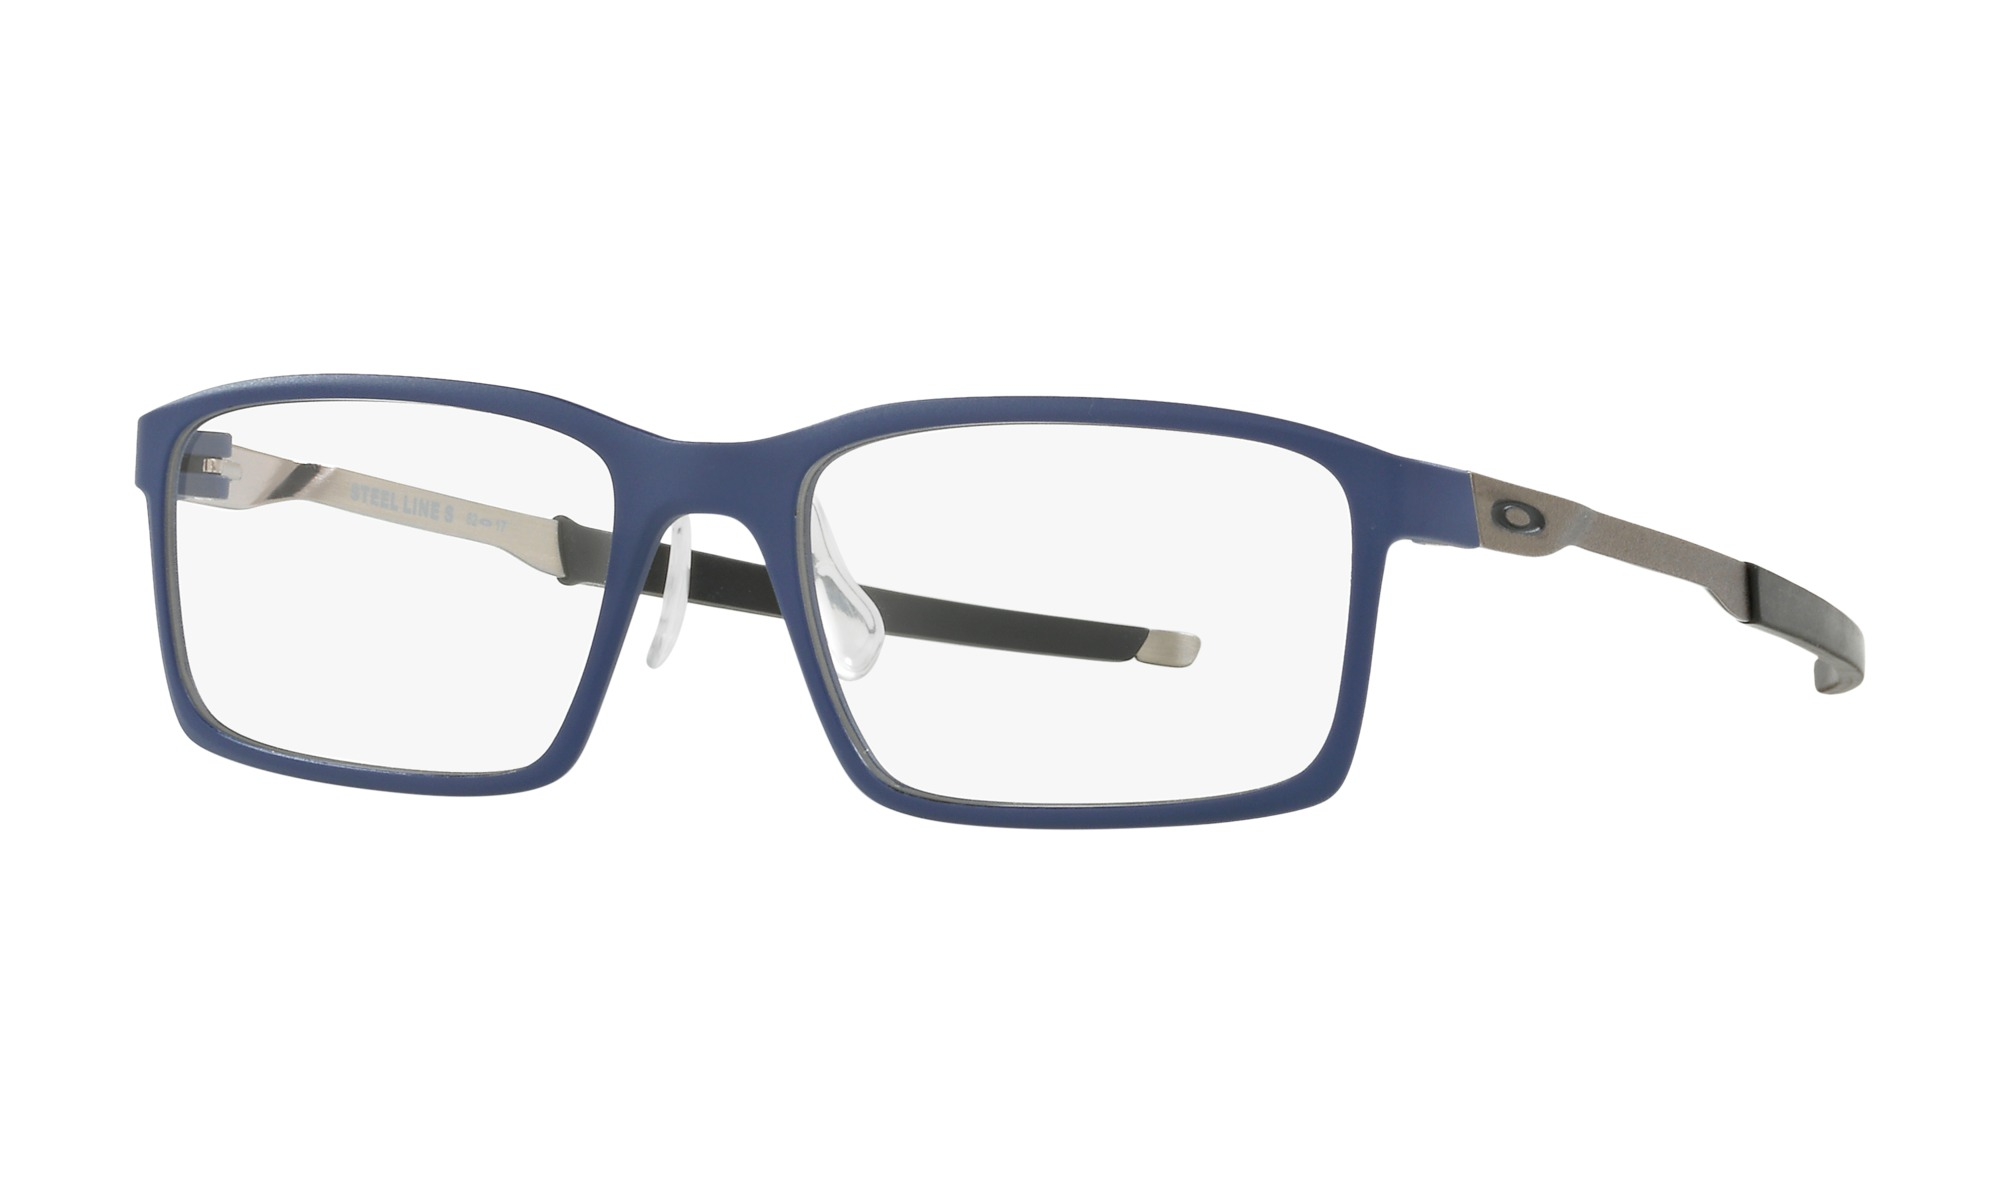 Oakley Men's Steel Line S Eyeglasses